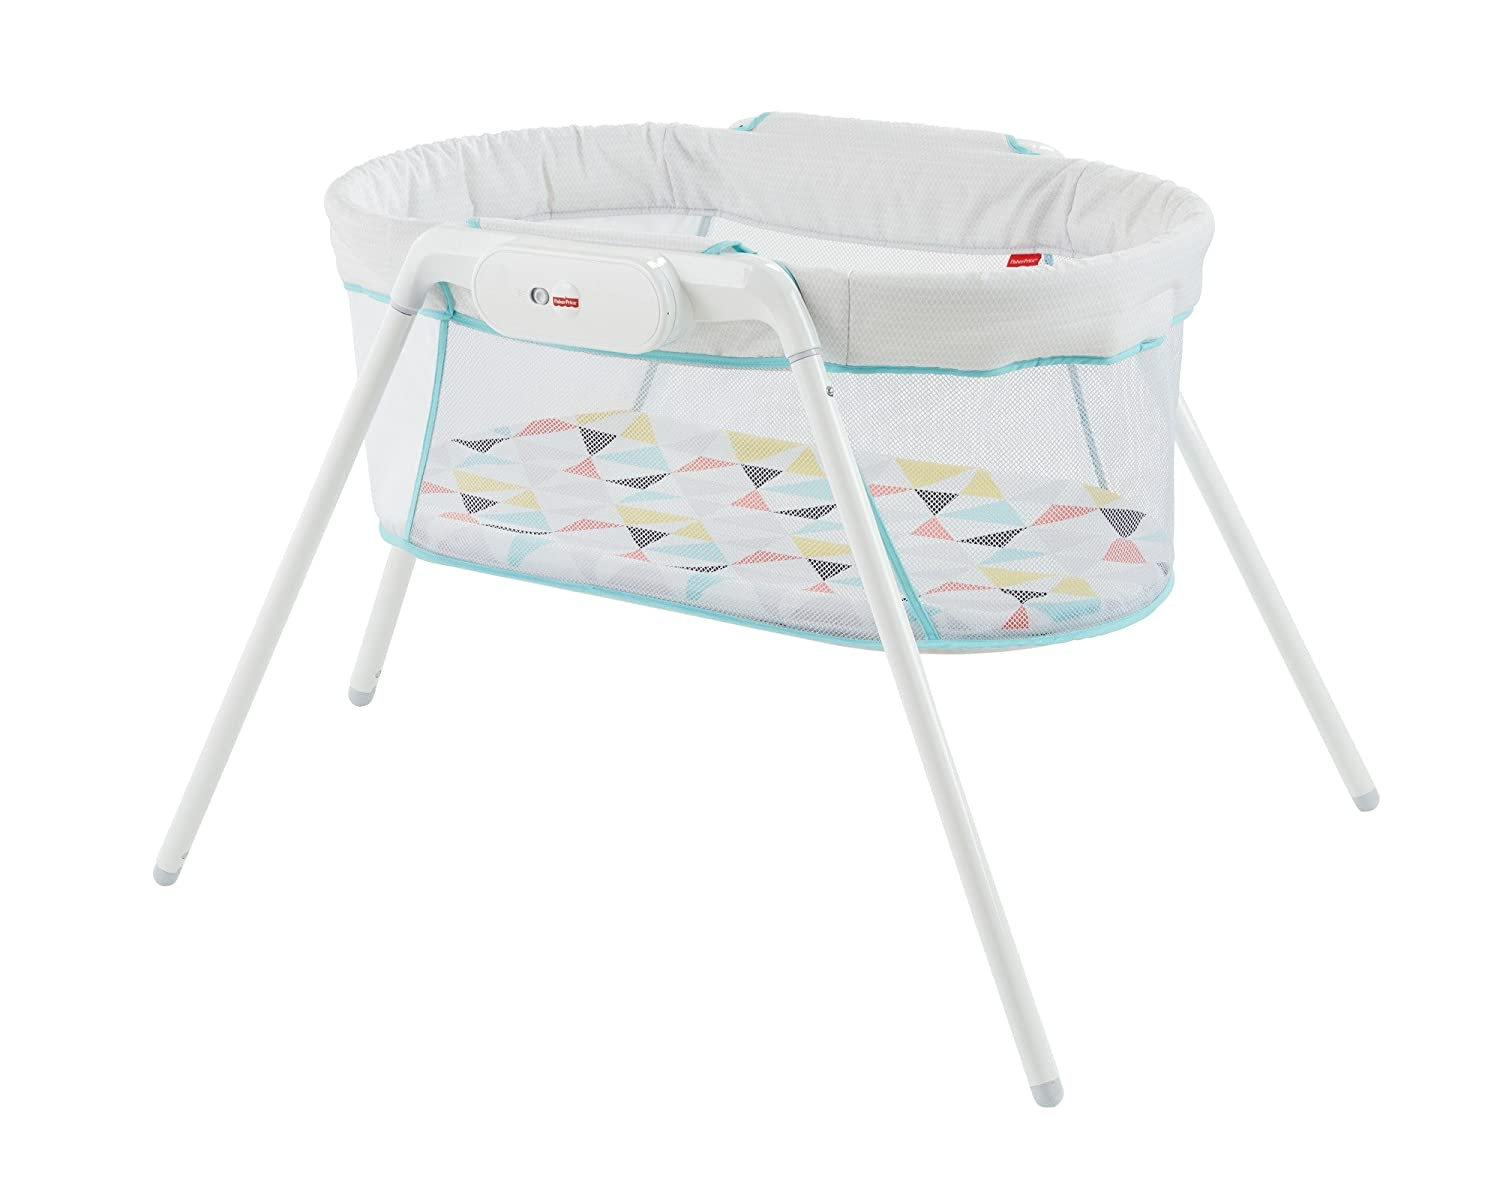 Fisher-Price GBR67 Stow and Go, Portable Bassinet with Calming Vibrations, Suitable From Birth for New-borns Mattel